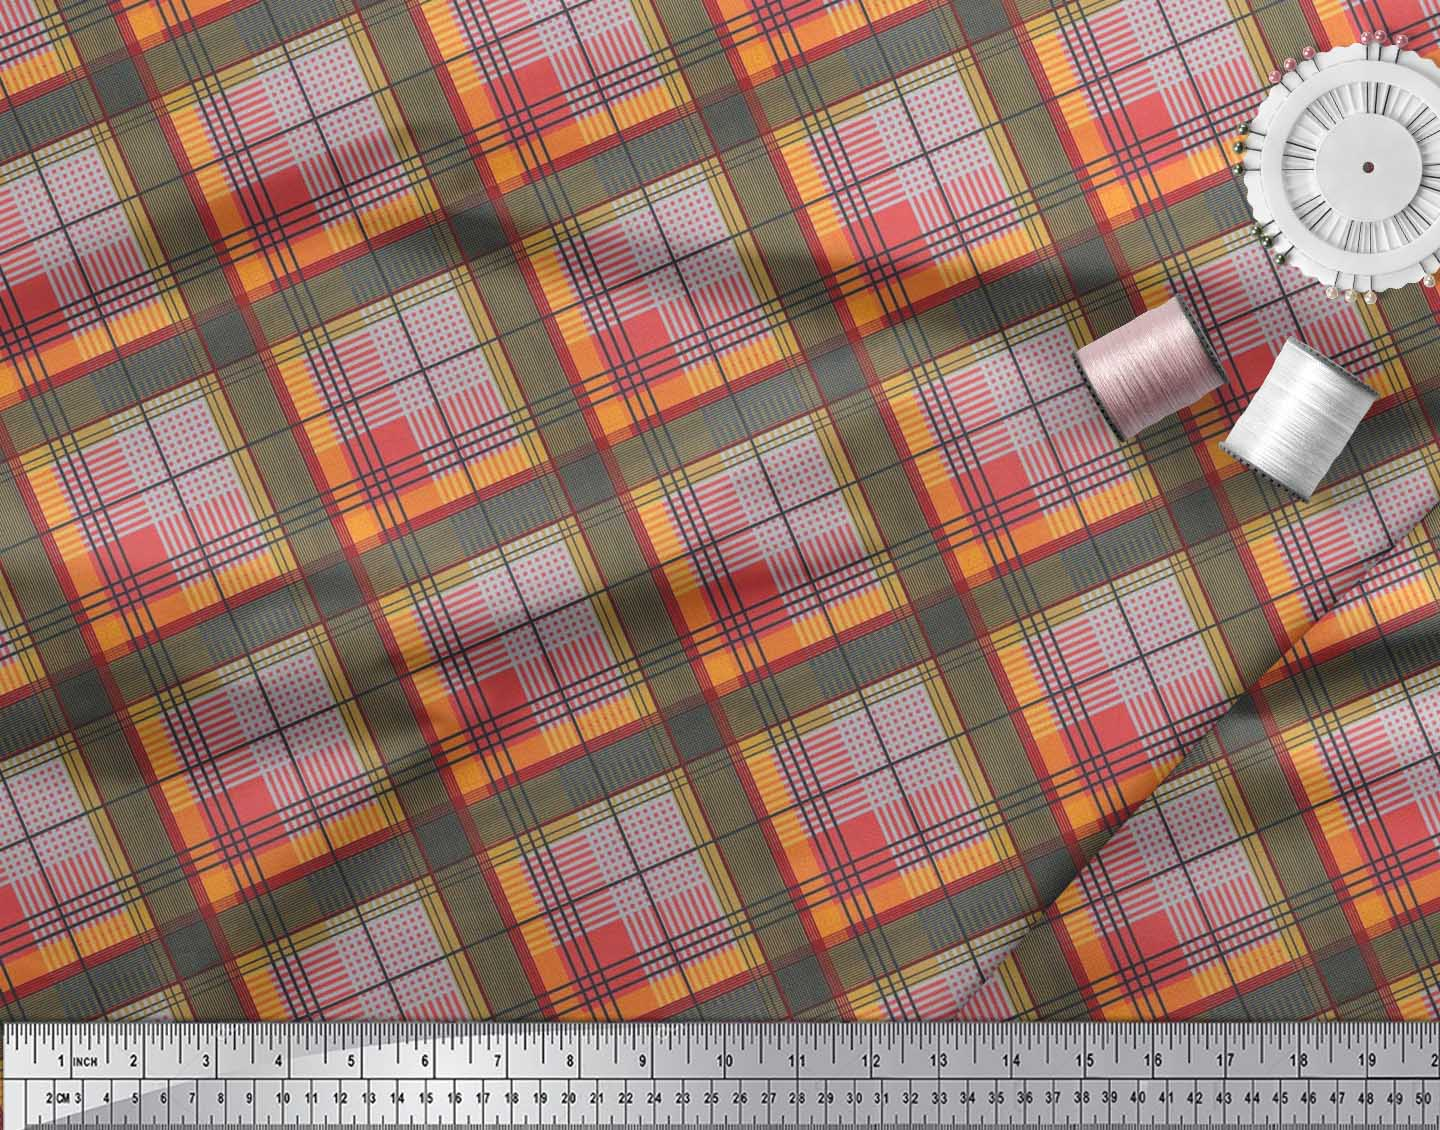 Soimoi-Cotton-Poplin-Fabric-Diagonal-Check-Print-Fabric-by-the-metre-KSh thumbnail 4